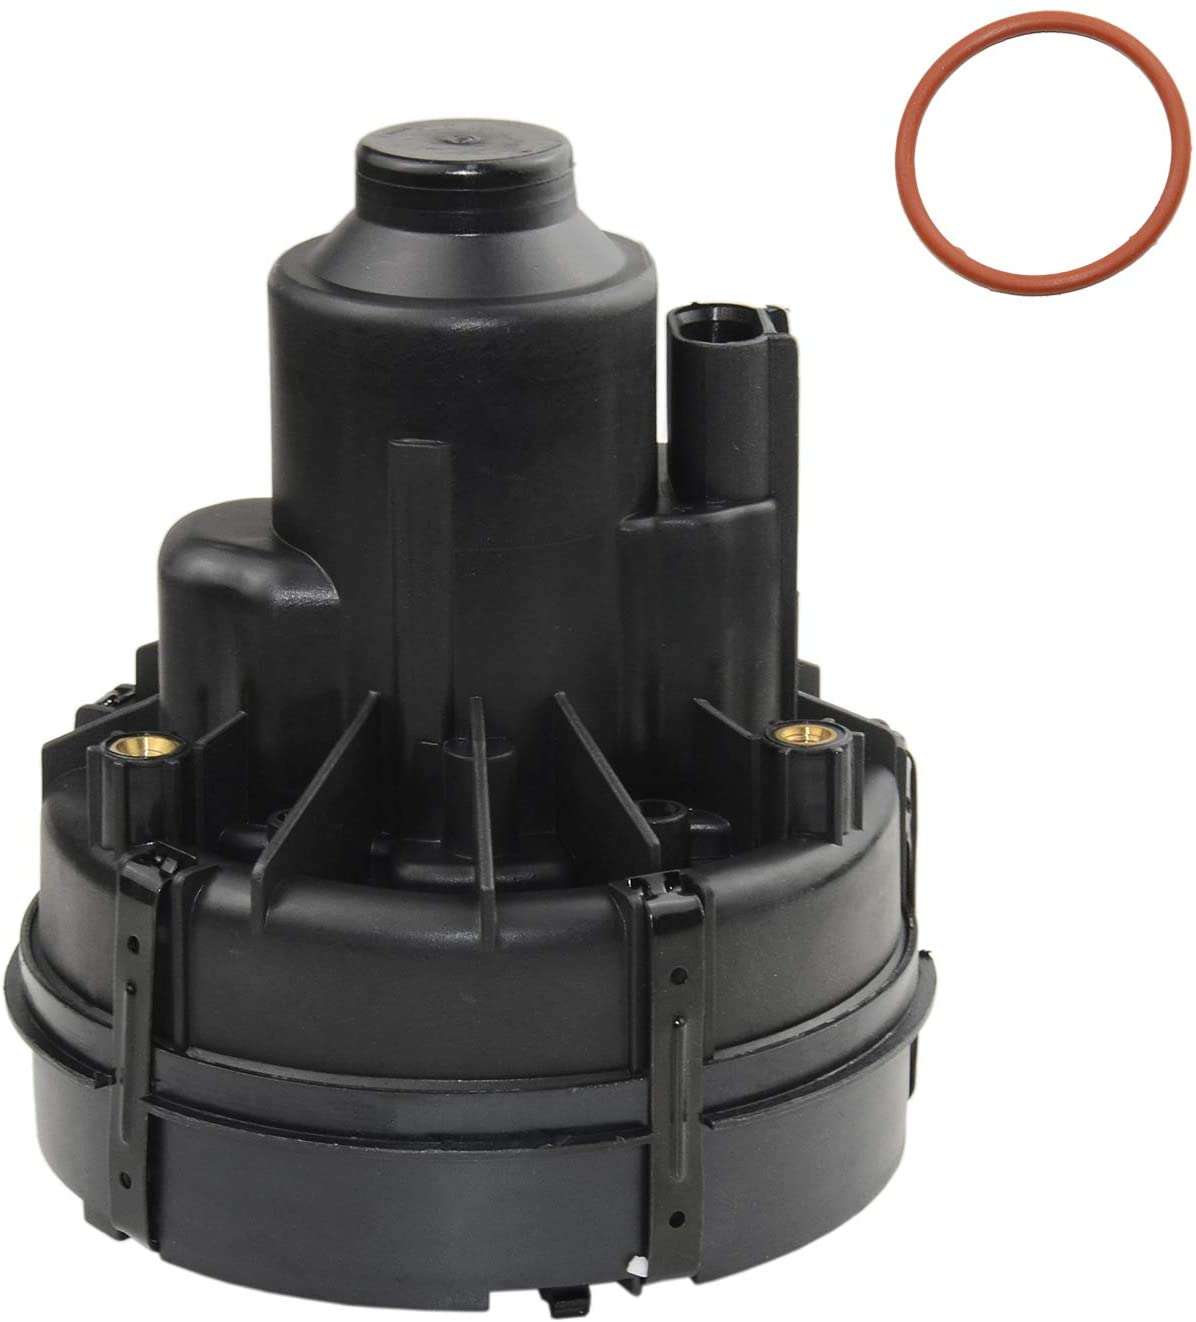 Secondary Air Smog Injection Pump 12568795 19515548 for Cadillac DeVille Seville 4.6 Olds Intrigue 3.5L